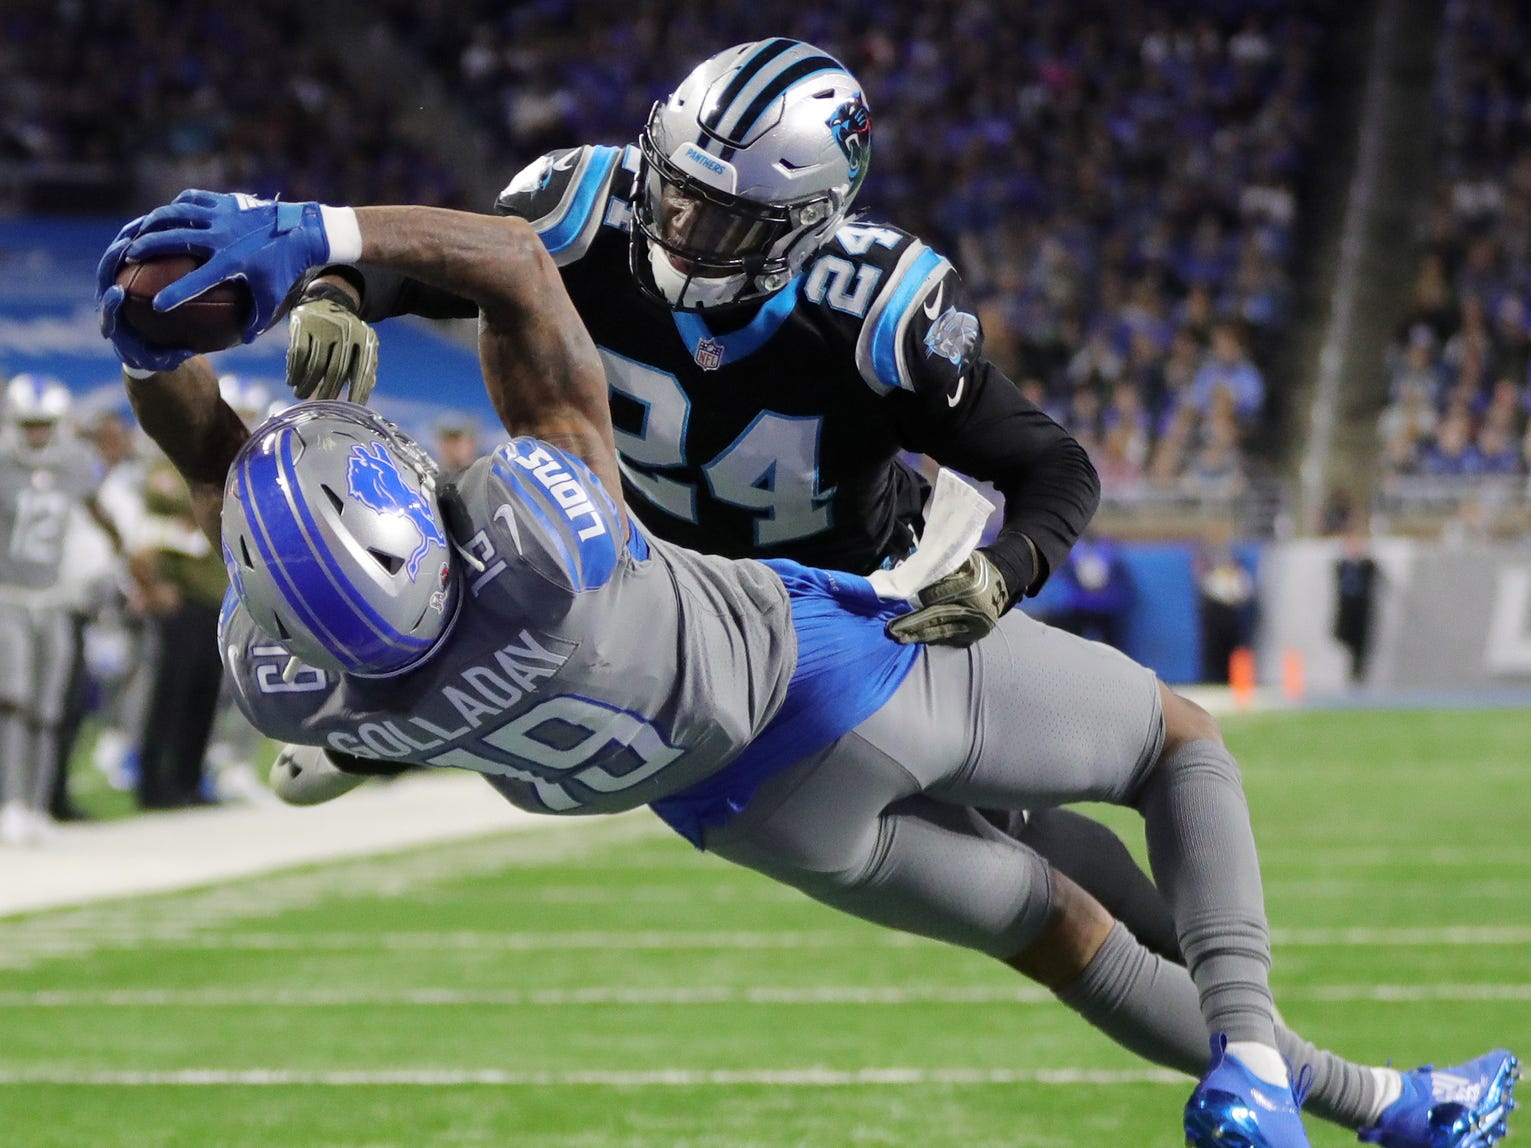 Lions receiver Kenny Golladay makes a touchdown catch against Panthers cornerback James Bradberry in the second half of the Lions' 20-19 win on Sunday, Nov. 18, 2018, at Ford Field.